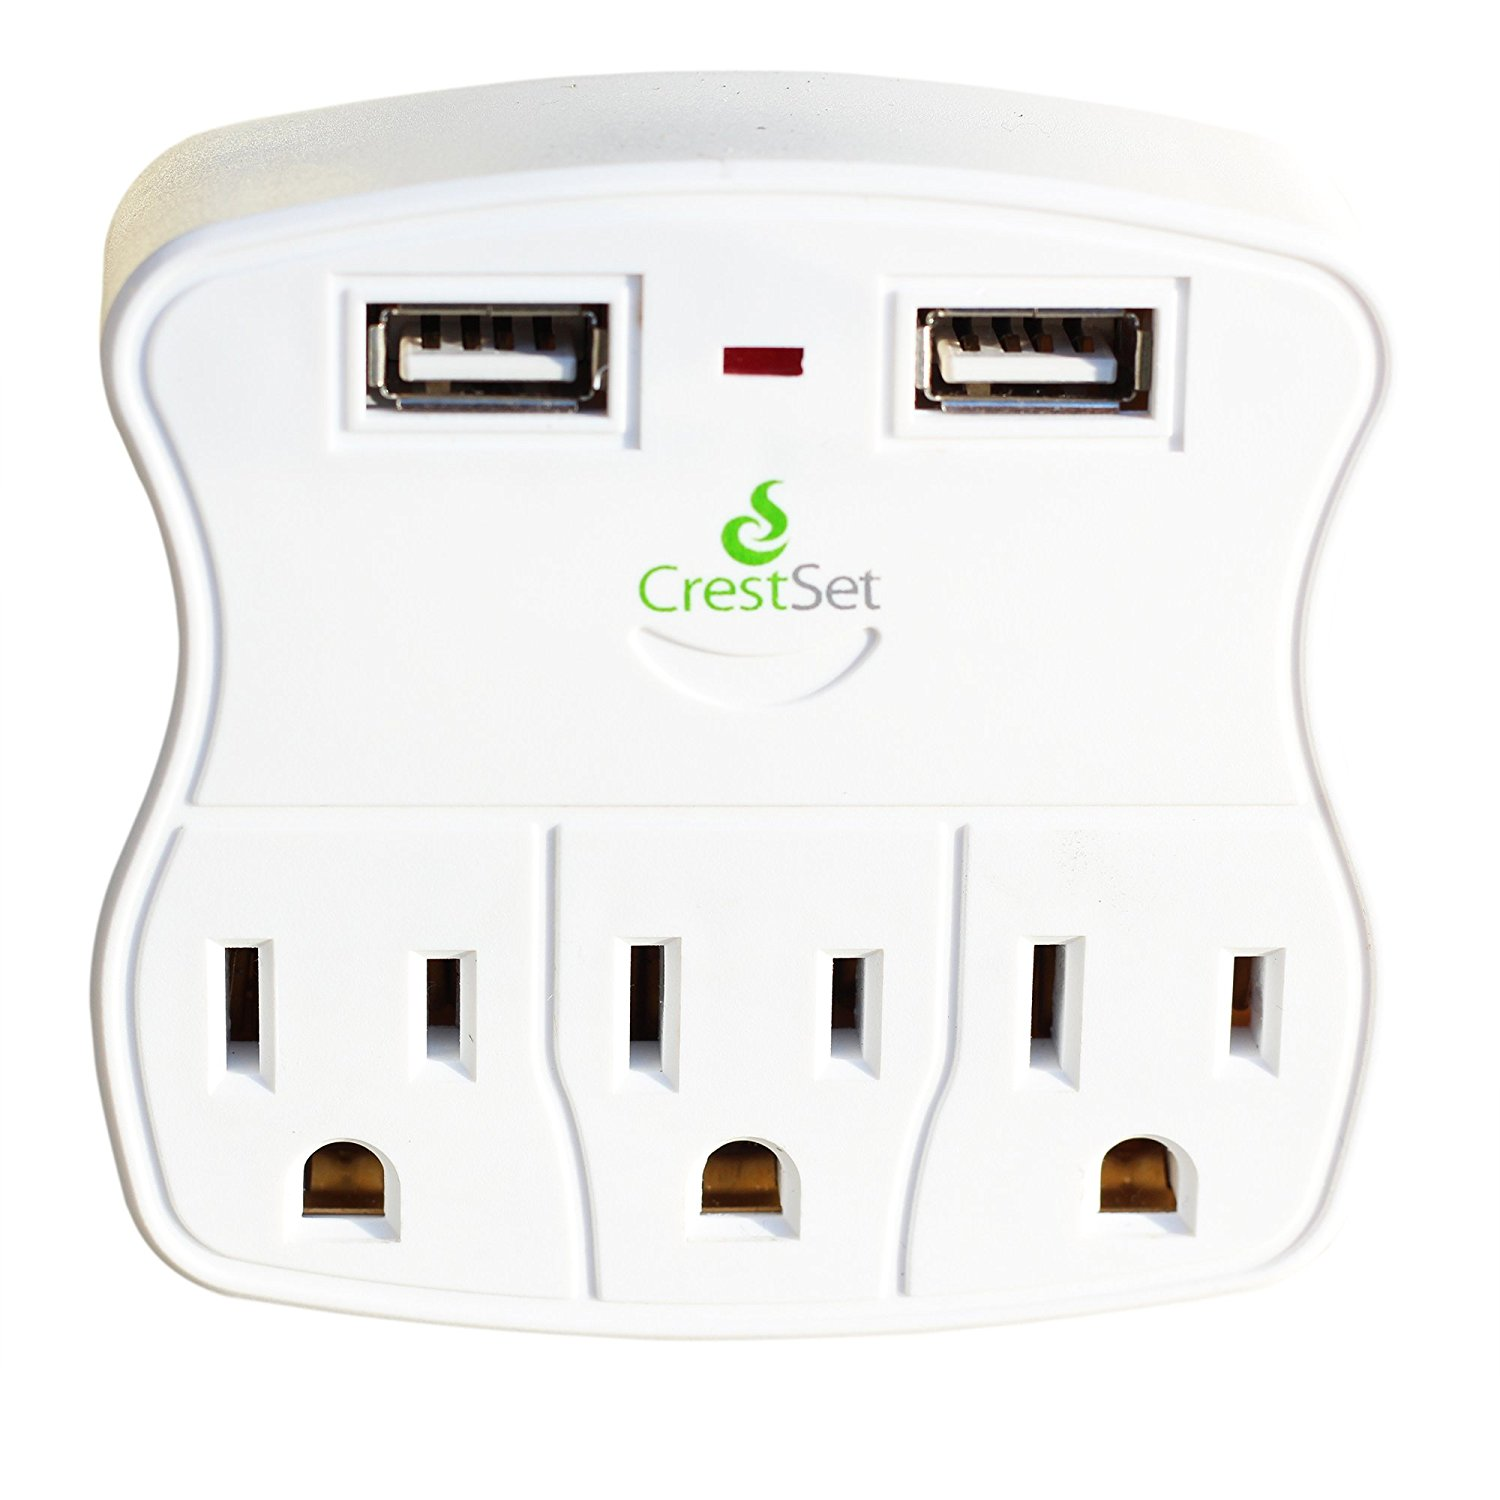 Portable USB Wall Outlet — Features 2 USB Ports 3 AC Ports - 5-Outlet Power Strip - Mini Travel Plugin - Charge iPhones, iPads, Laptops, Tablets, Bathroom Accessories and More - by CrestSet